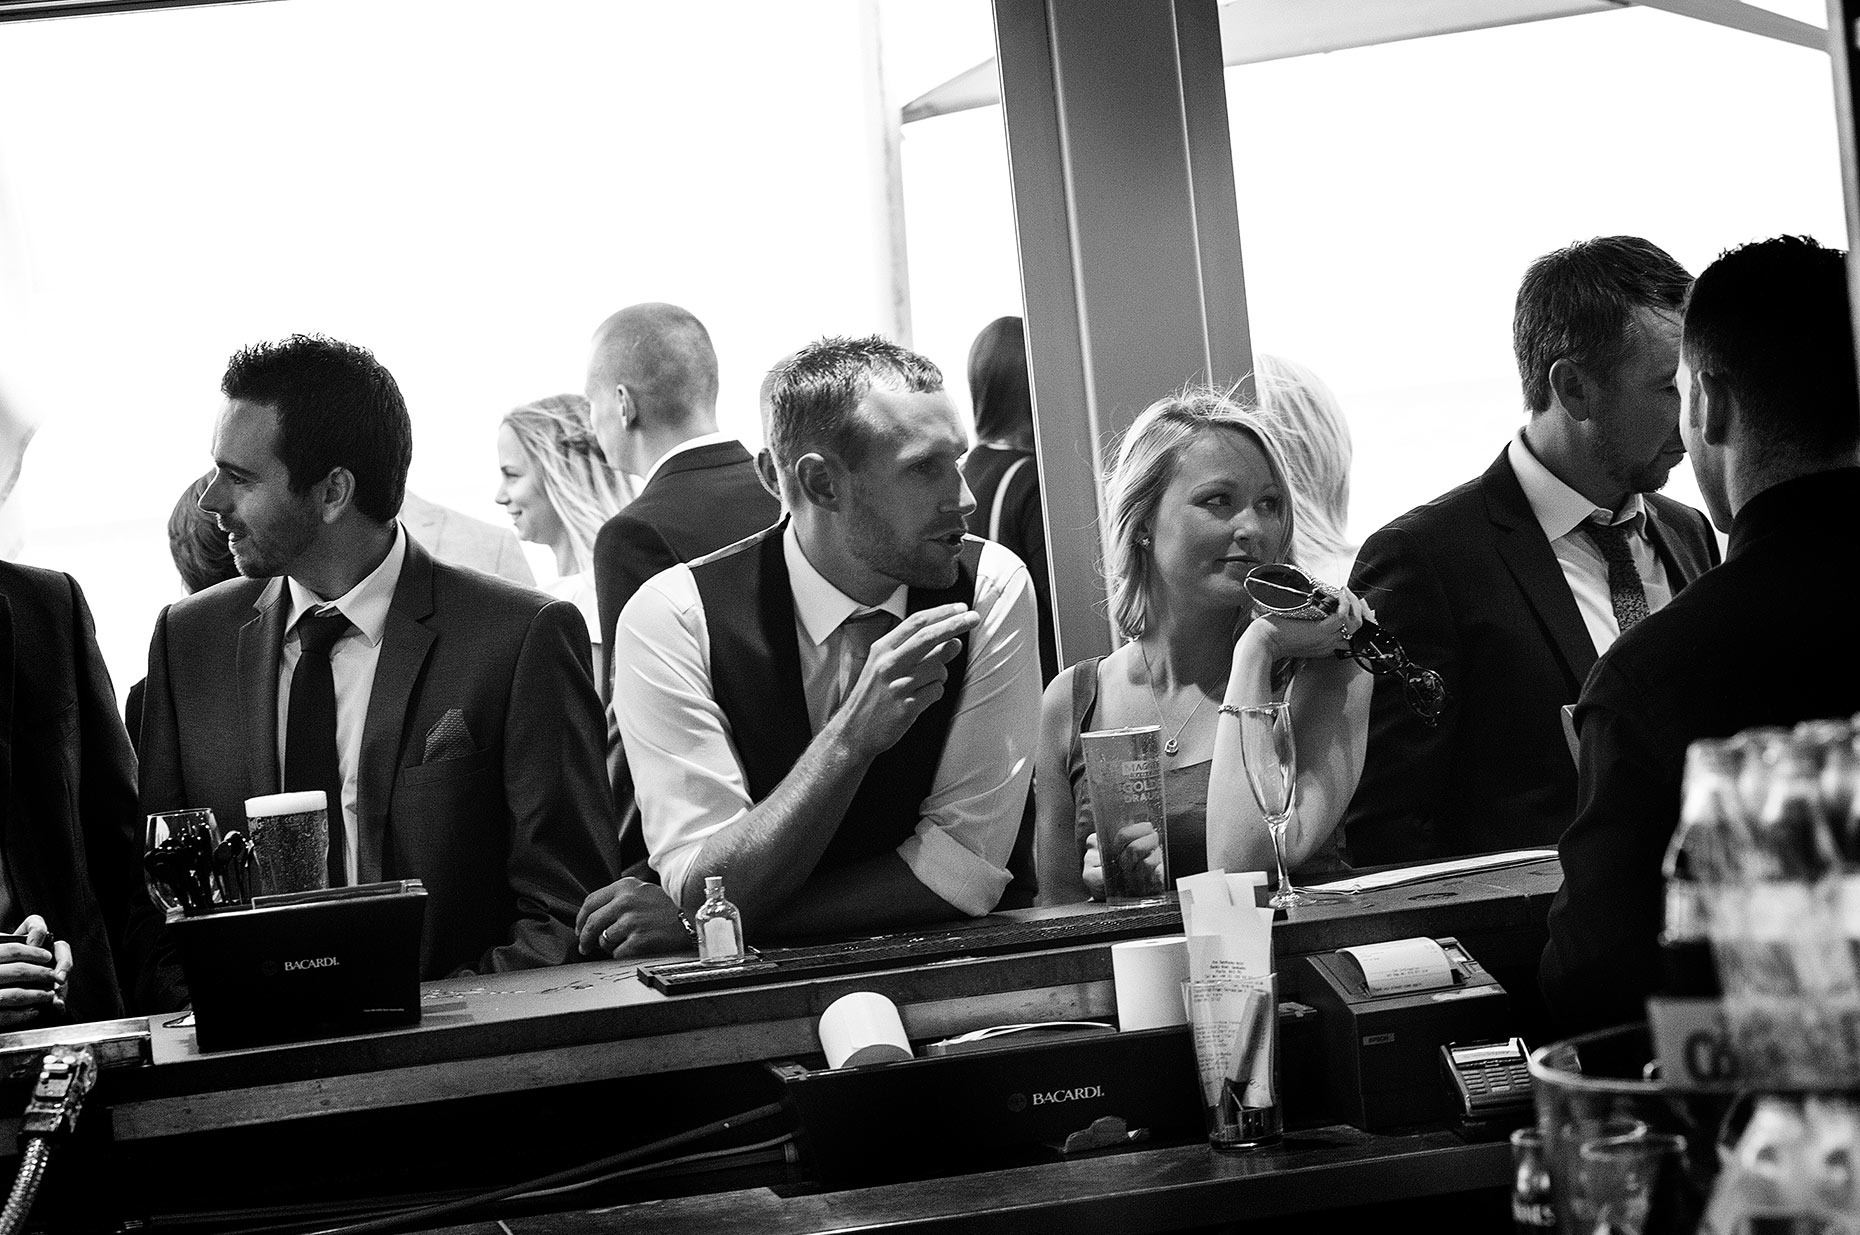 151Wedding-Reception-The-Sandbanks-Hotel-Poole